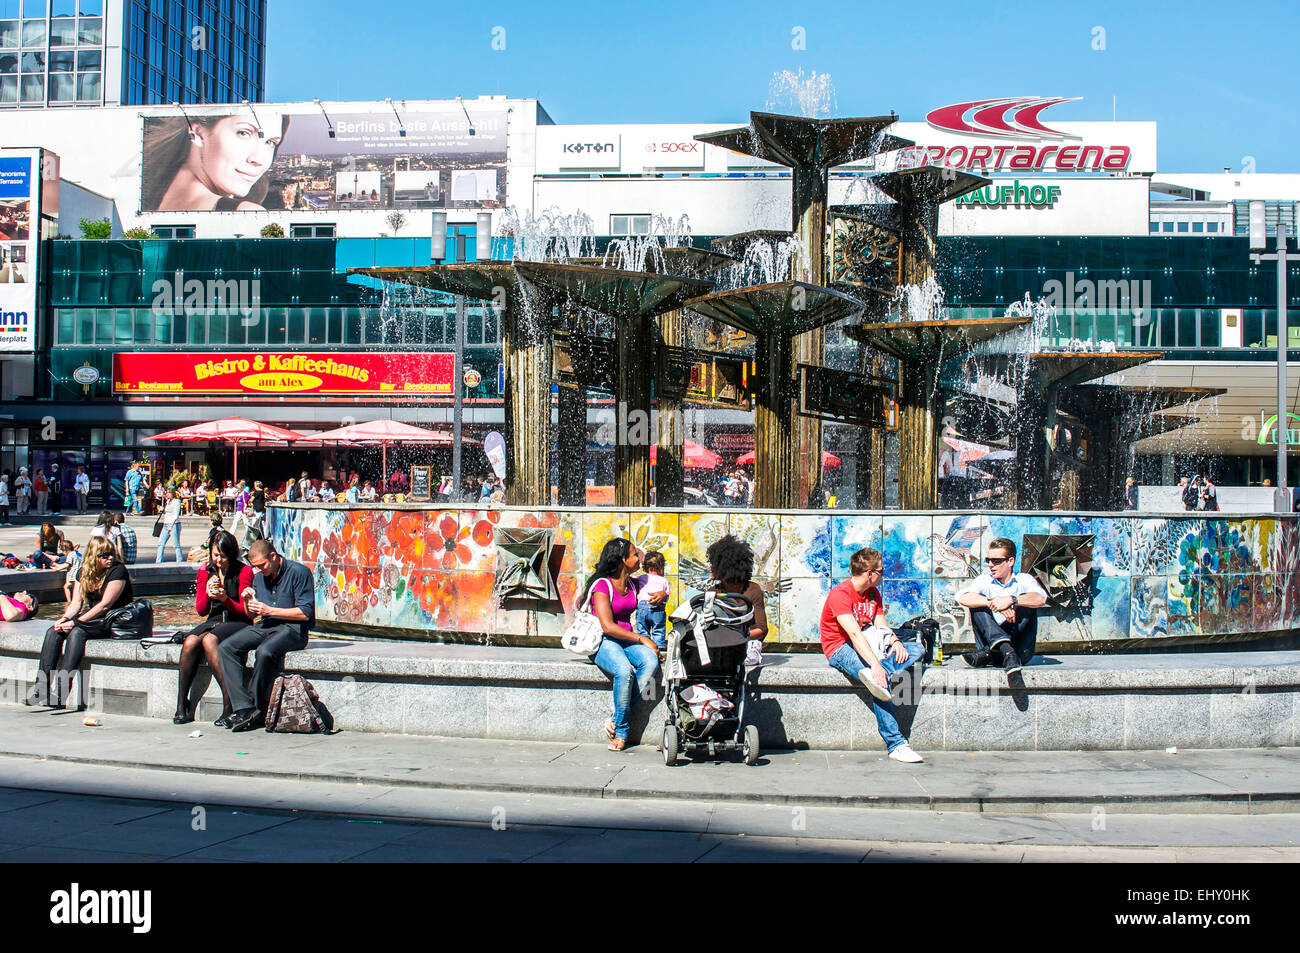 People cooling off around a fountain at Alexanderplatz in Berlin, Germany on a hot day. - Stock Image